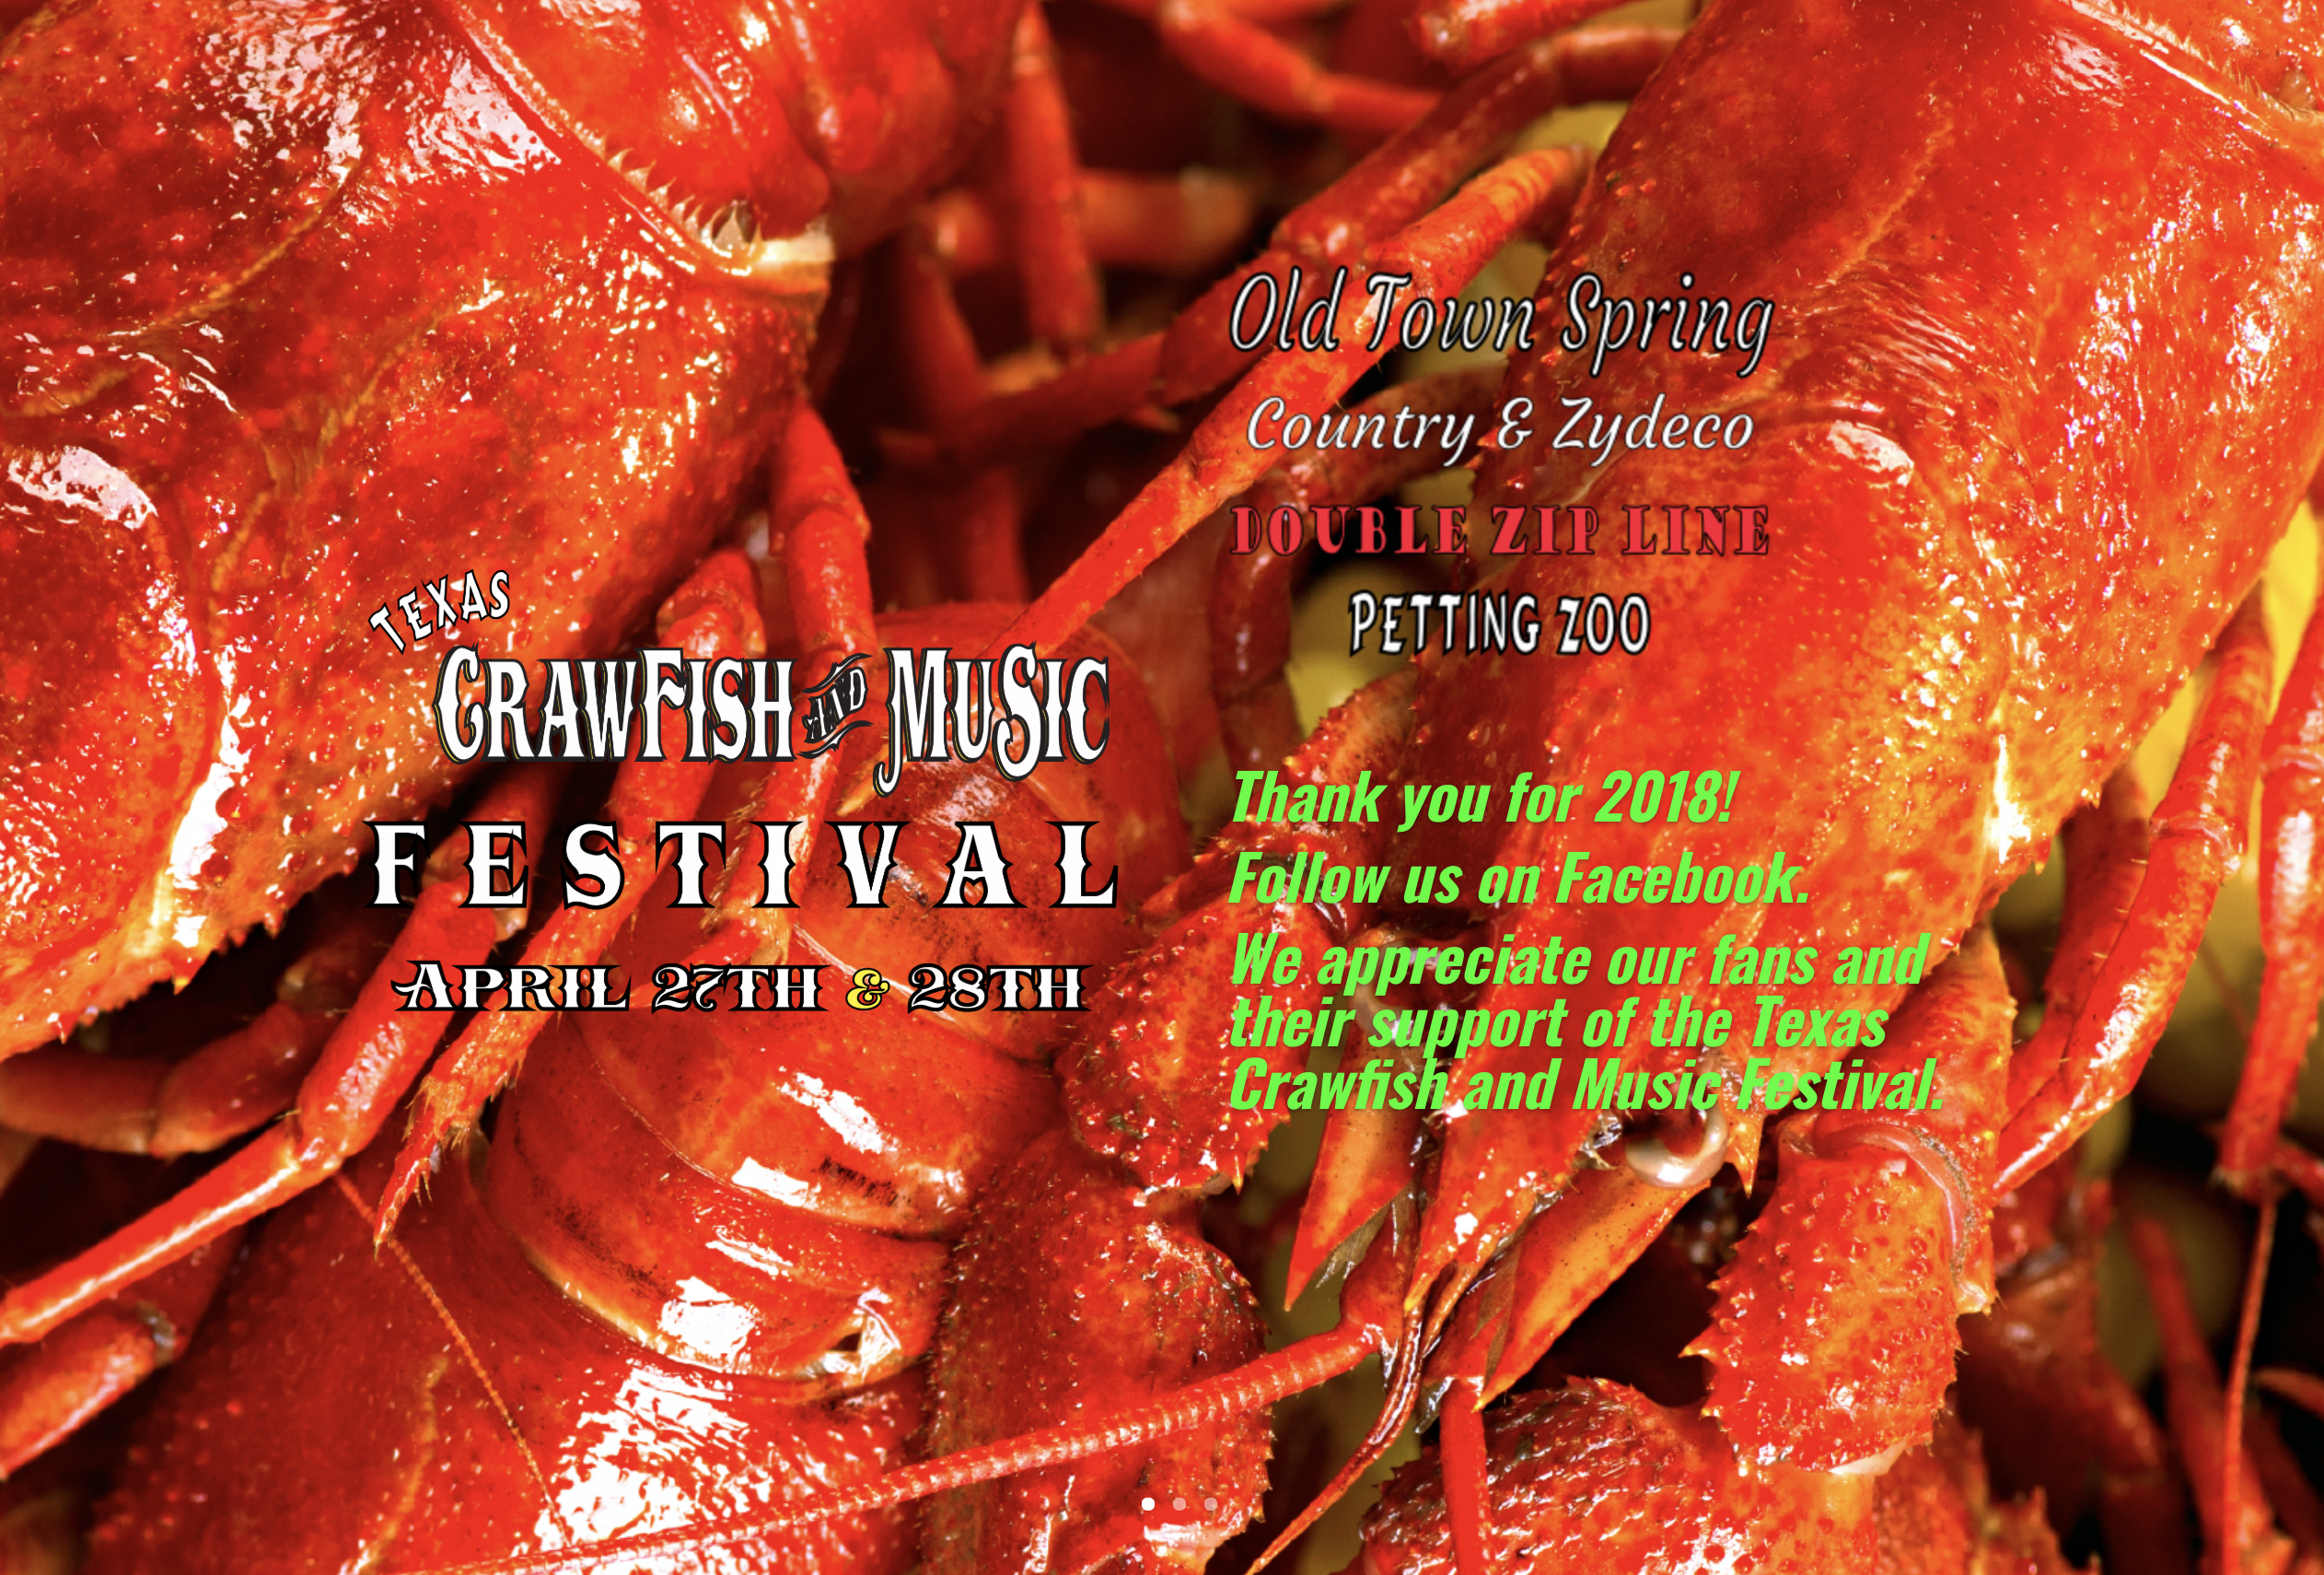 old town spring, crawfish festival, april each year, music events petting zoo and more